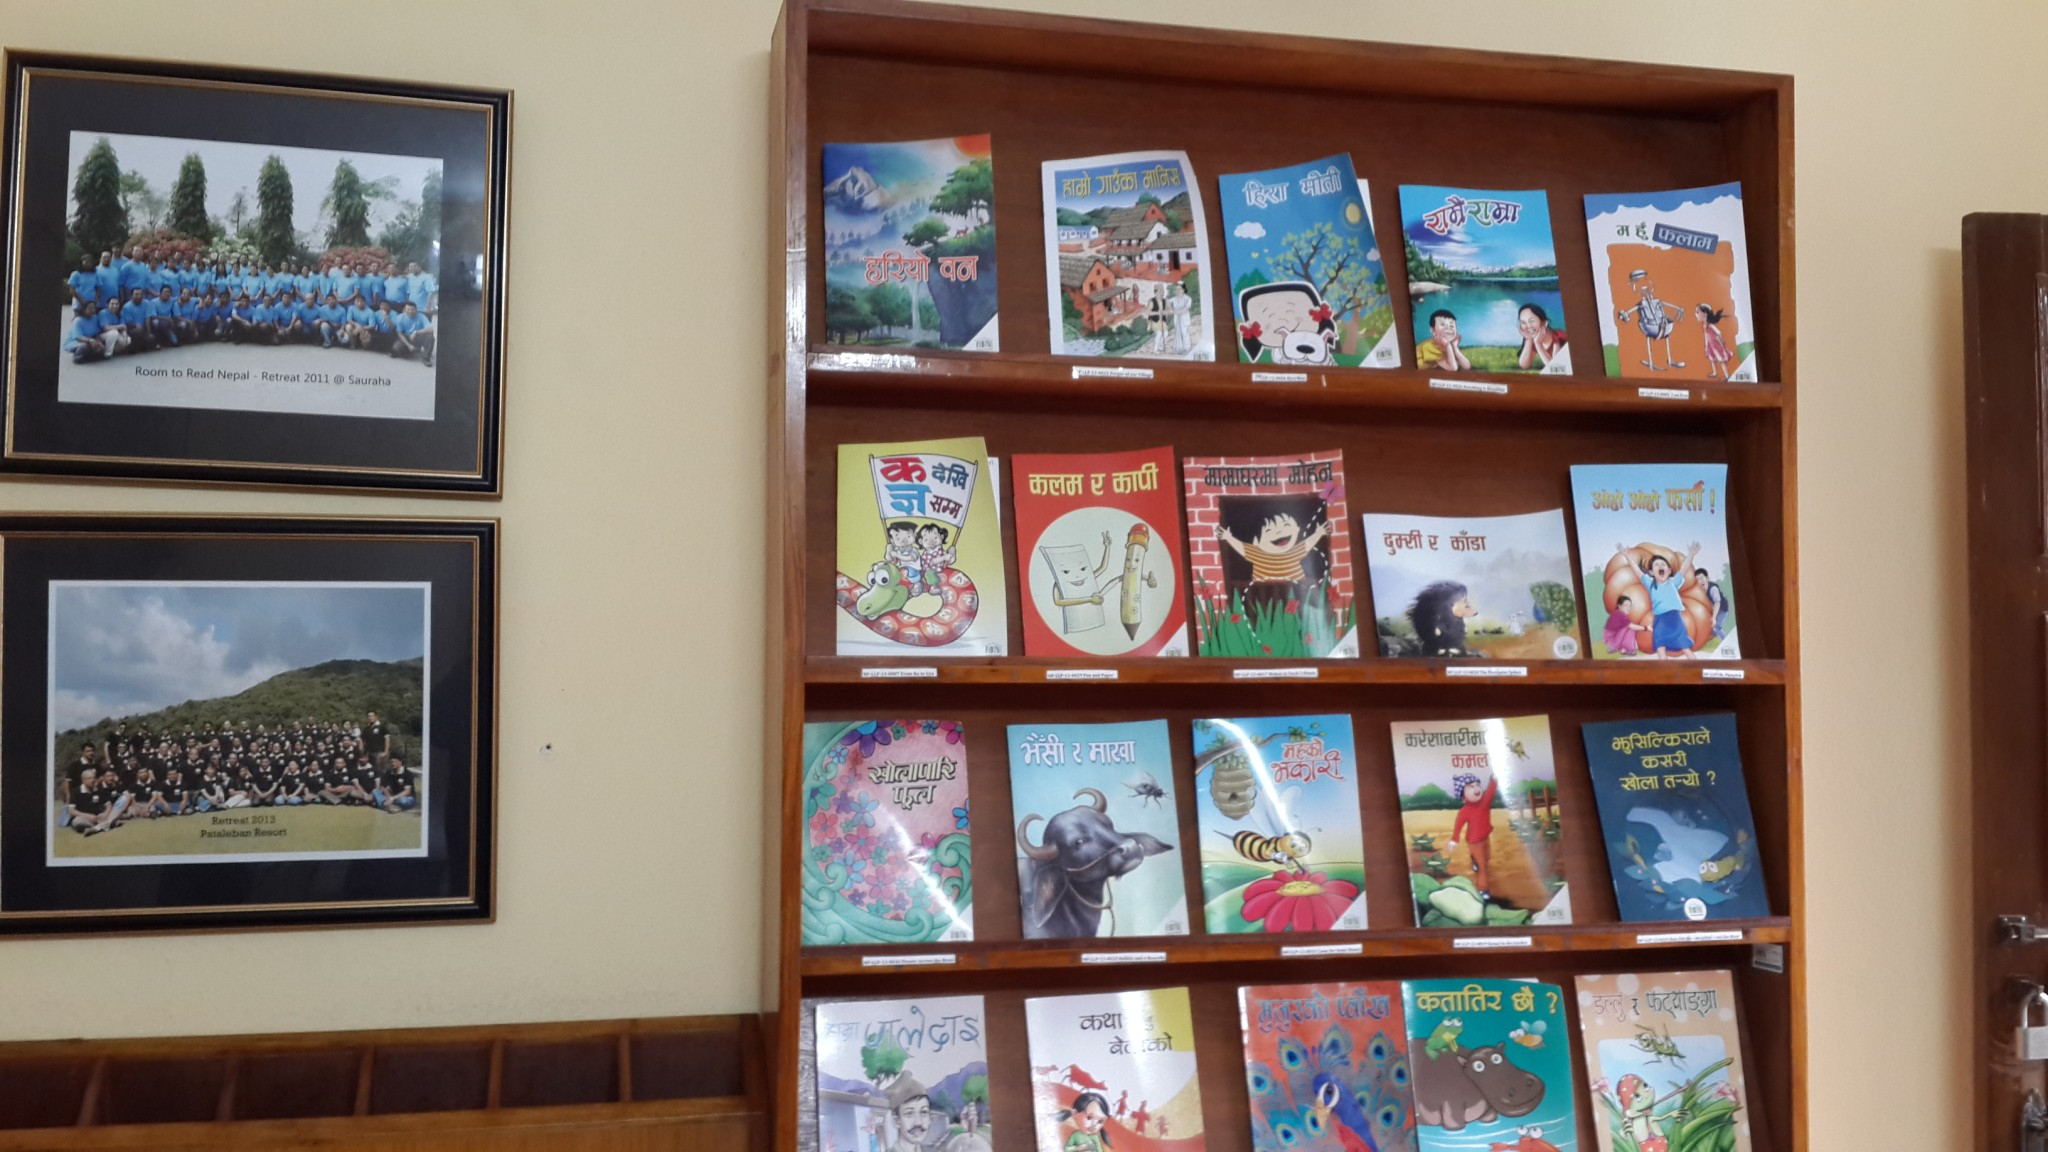 Some of the local language books published by Room to Read Kathmandu